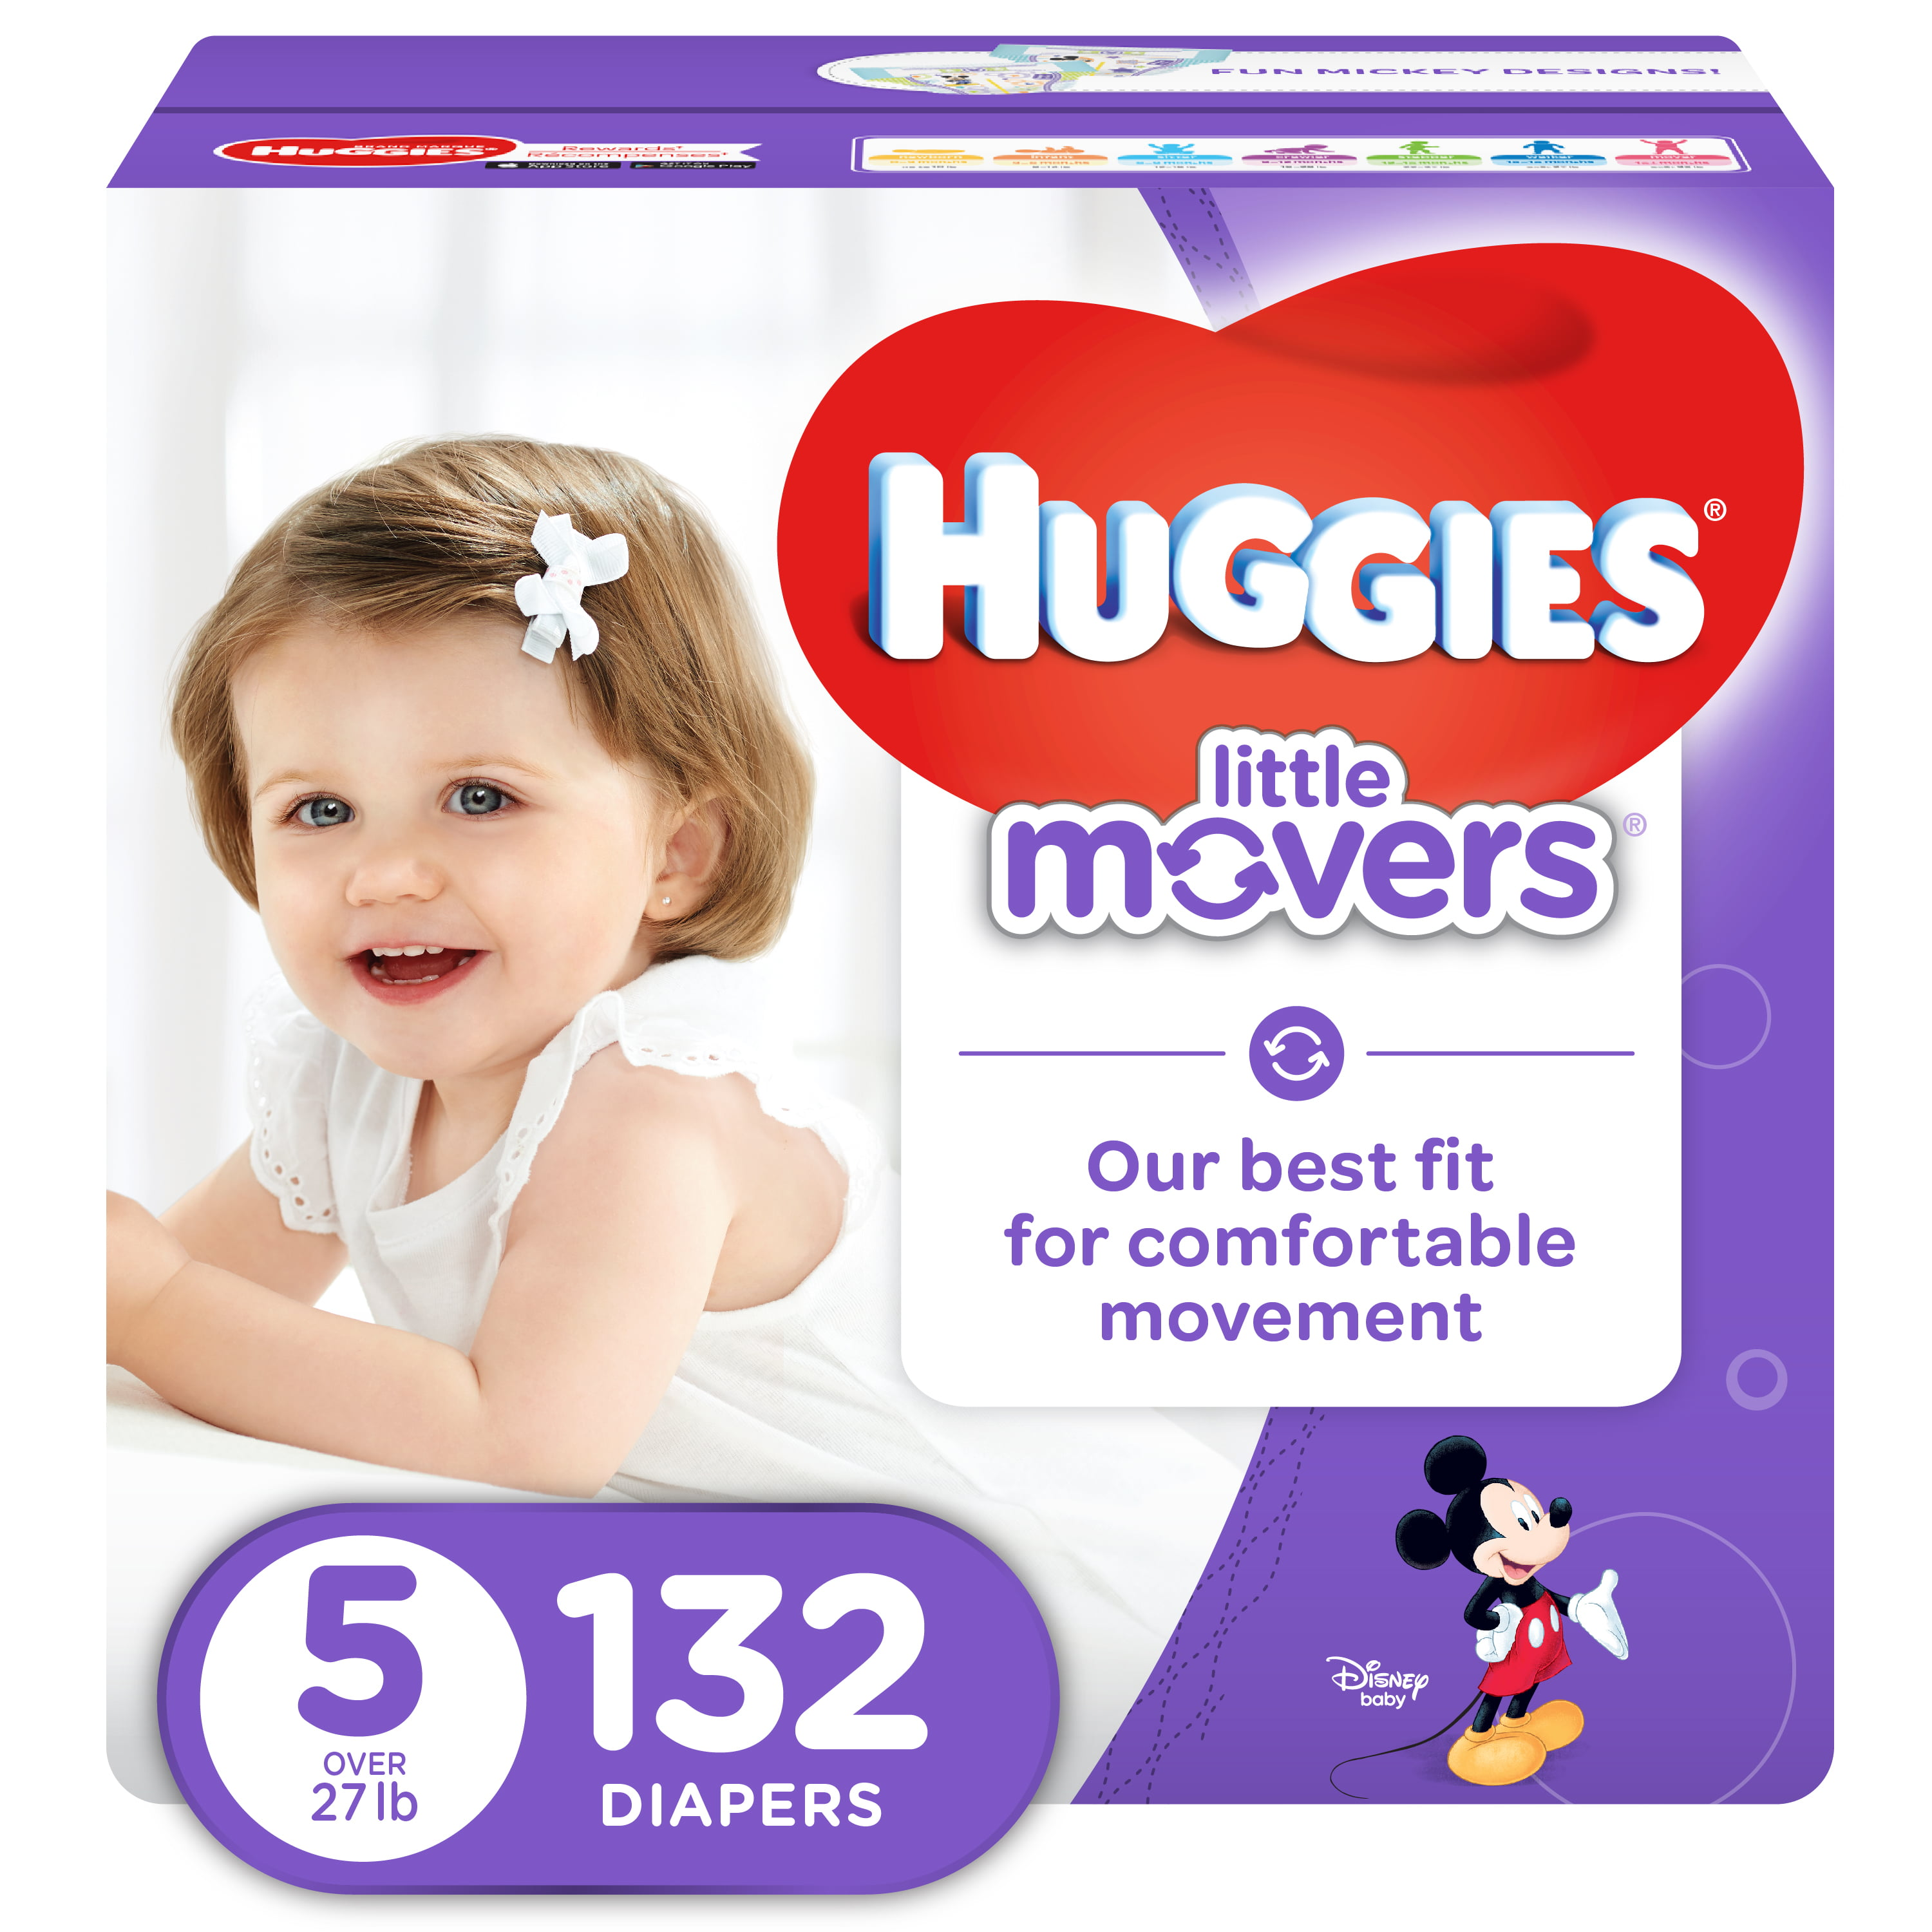 Diapers for the newborn. What should I look for when choosing